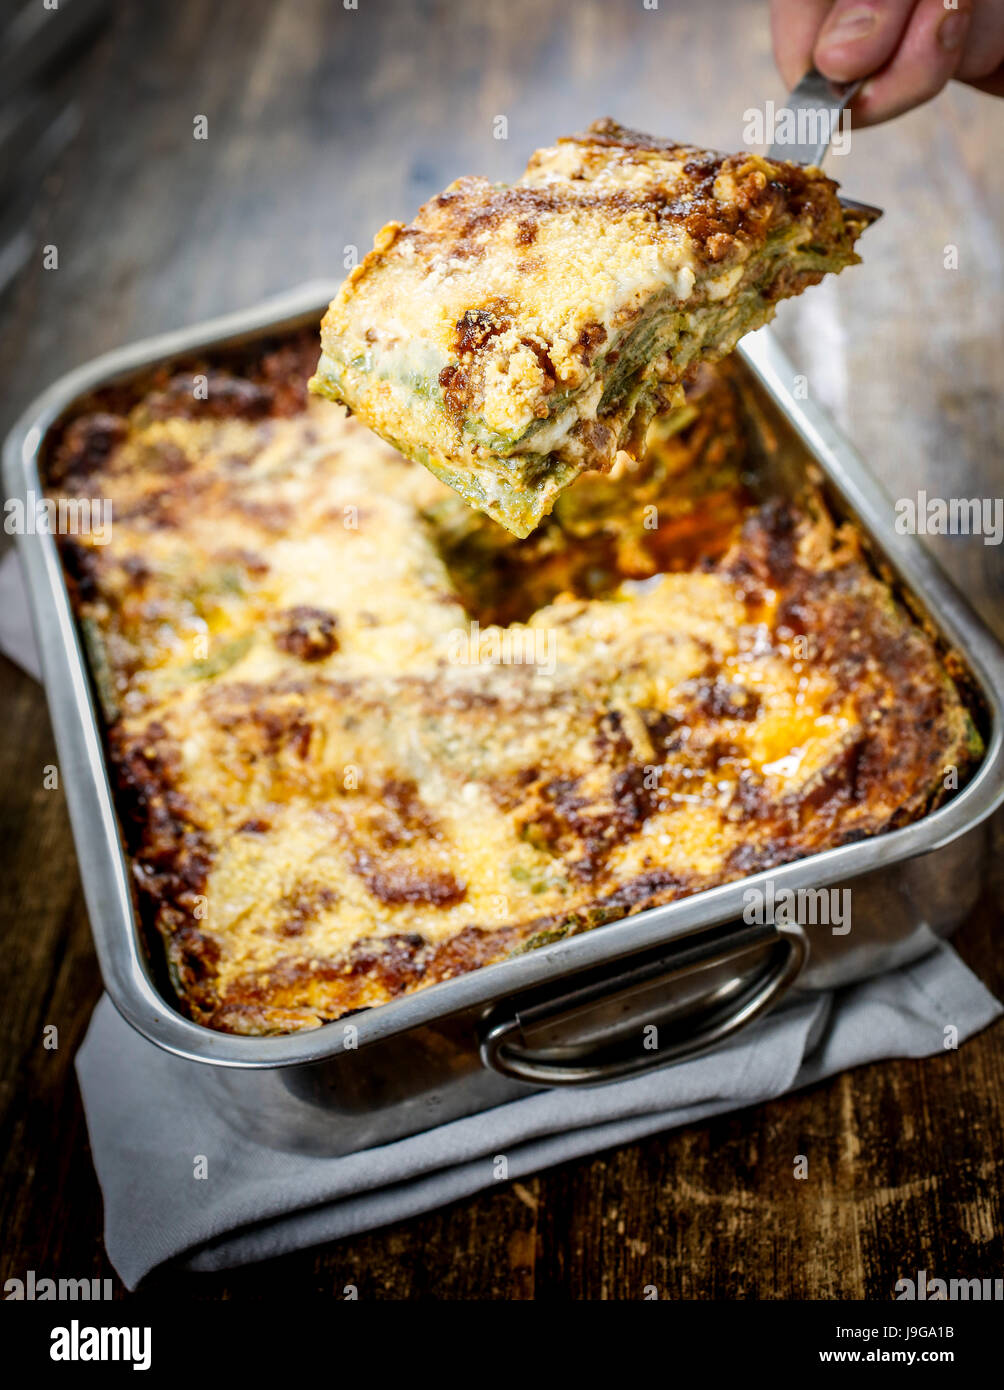 Lasagna bolognese. Typical homemade fresh green pasta cooked in oven. - Stock Image